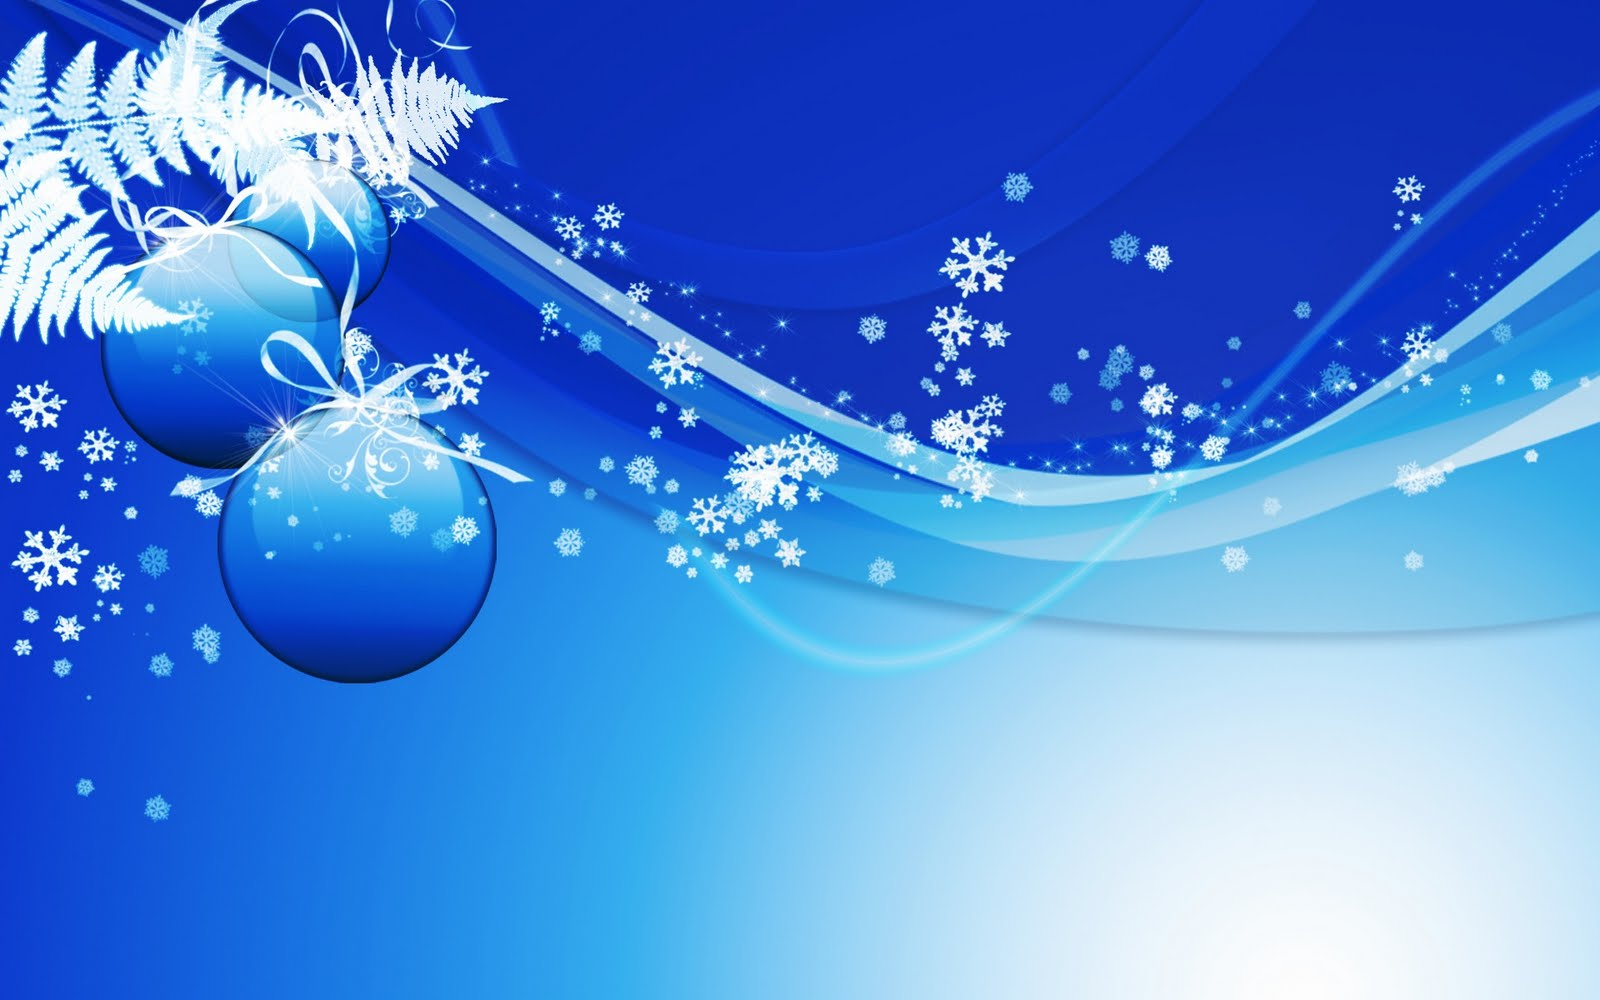 Merry Christmas 3D Backgrounds